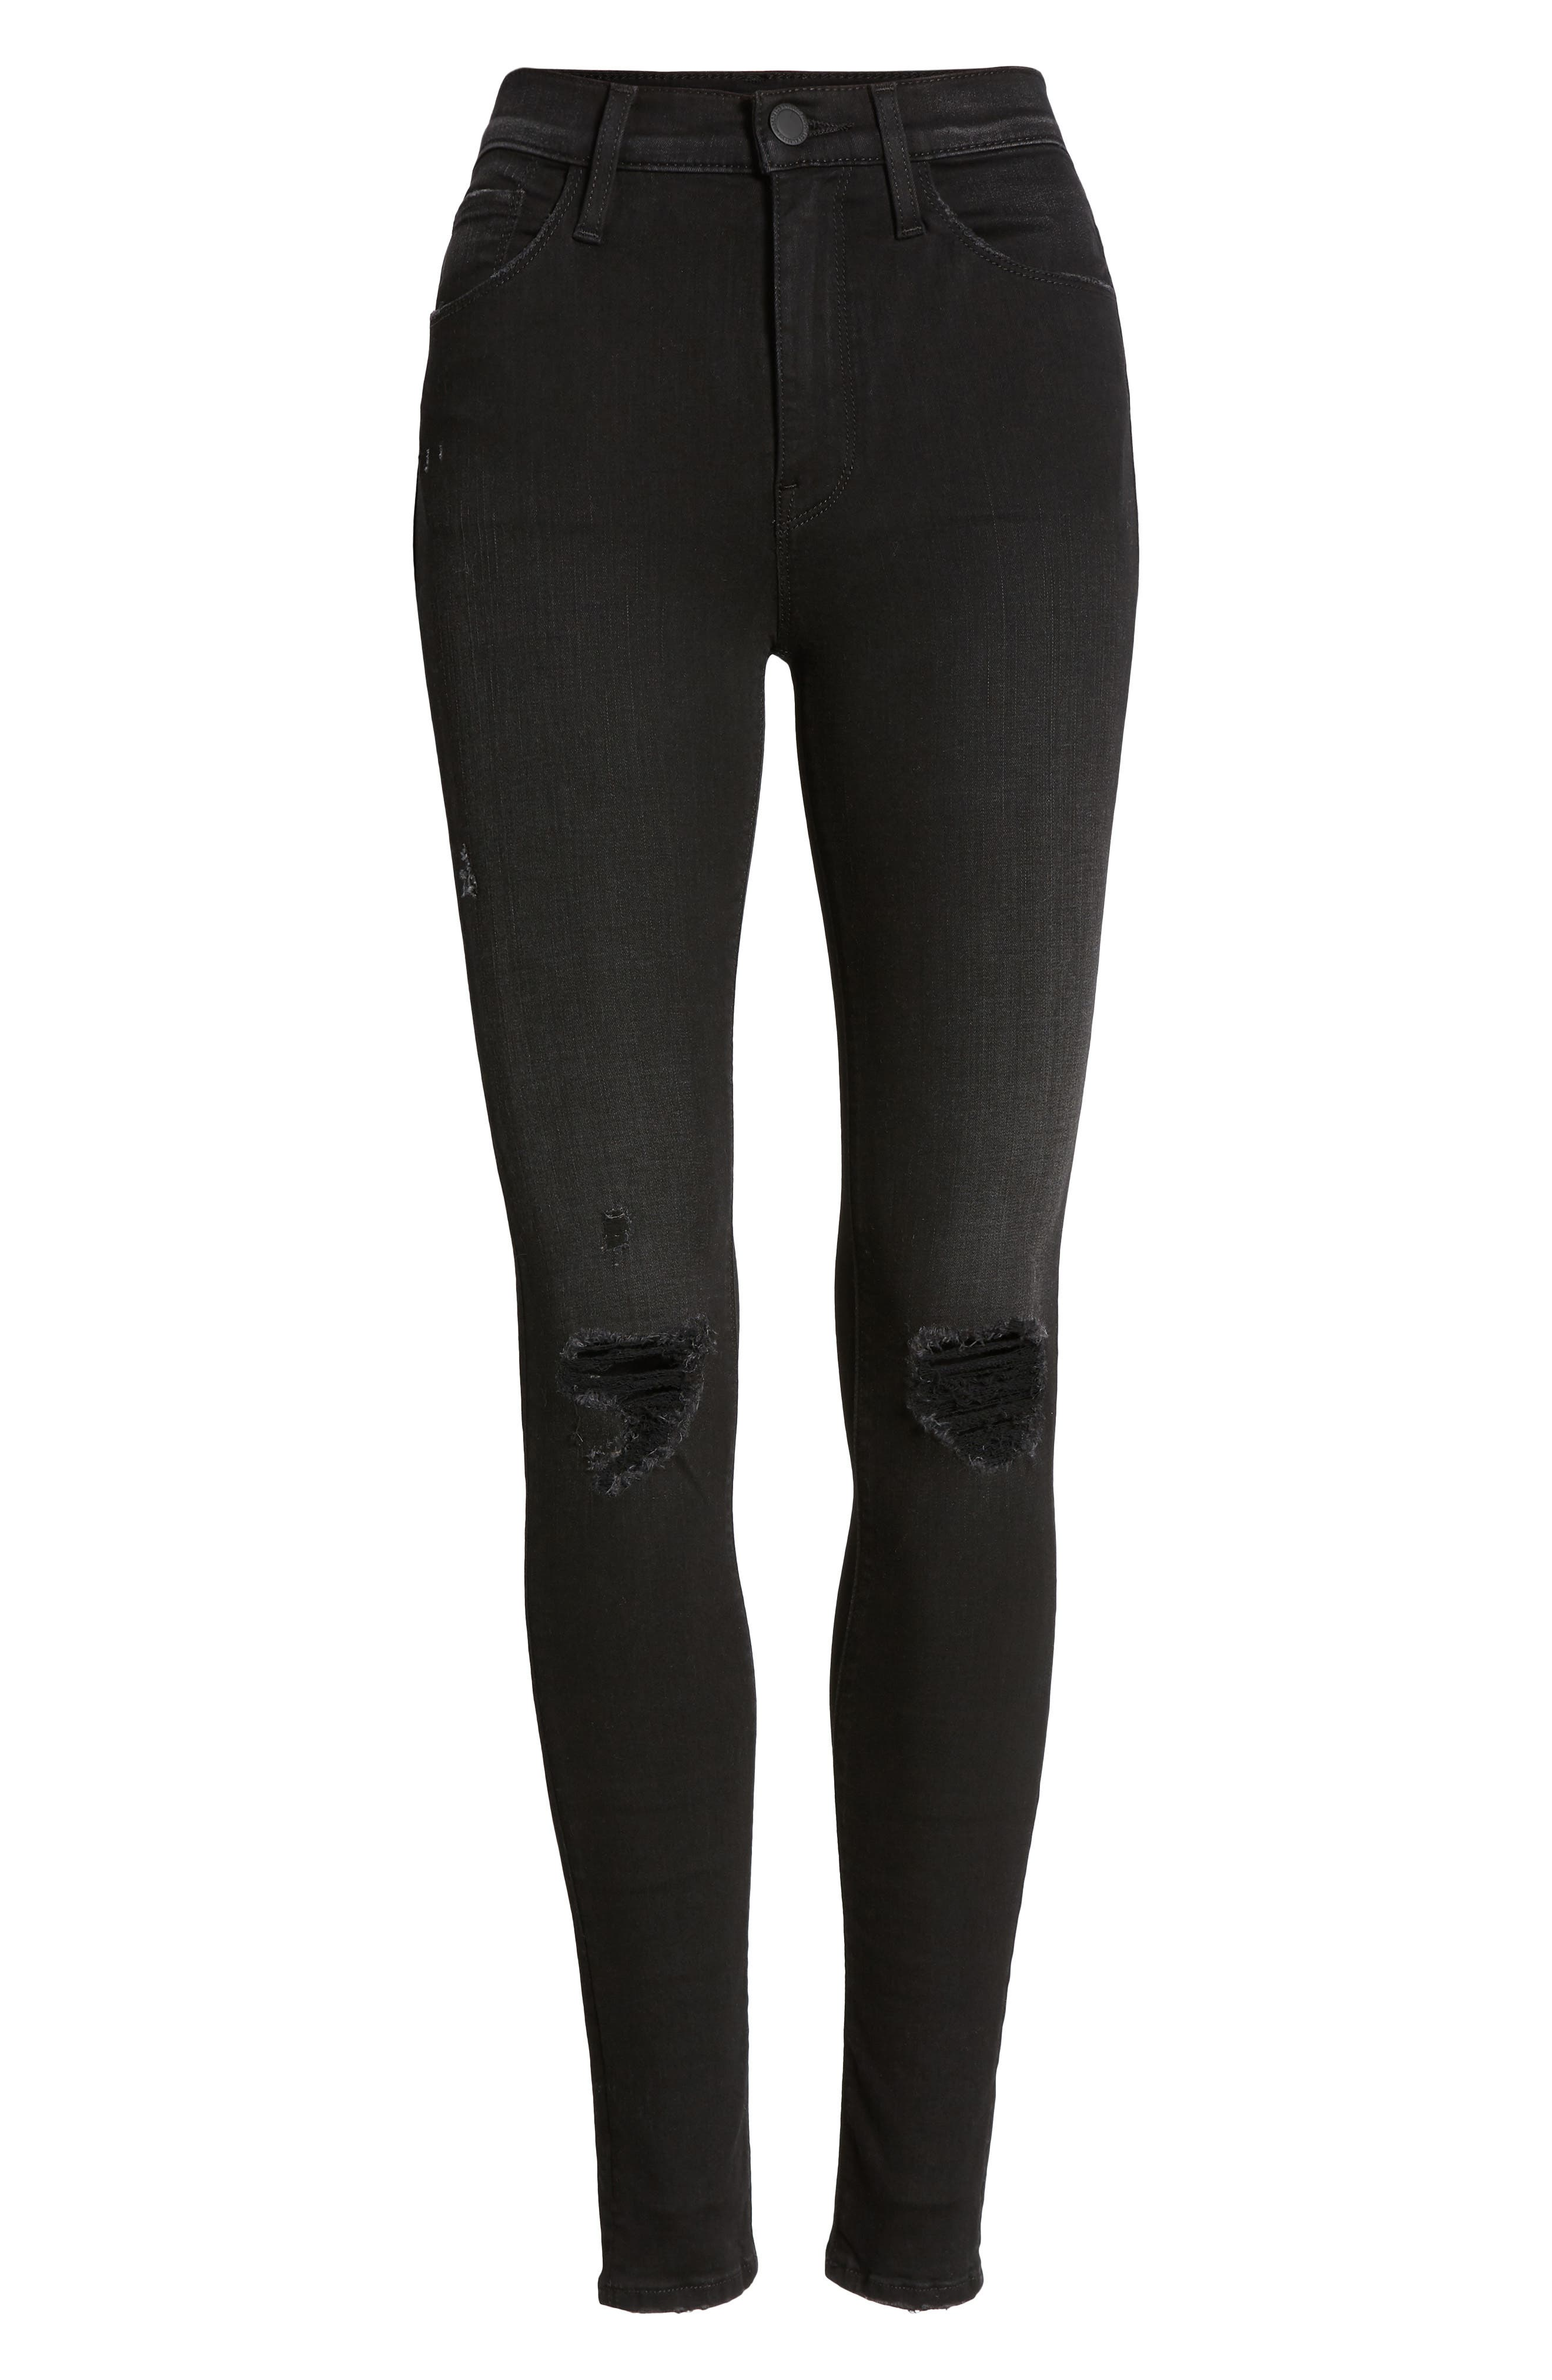 Barbara Ripped High Waist Super Skinny Jeans,                             Alternate thumbnail 7, color,                             WESTBOUND